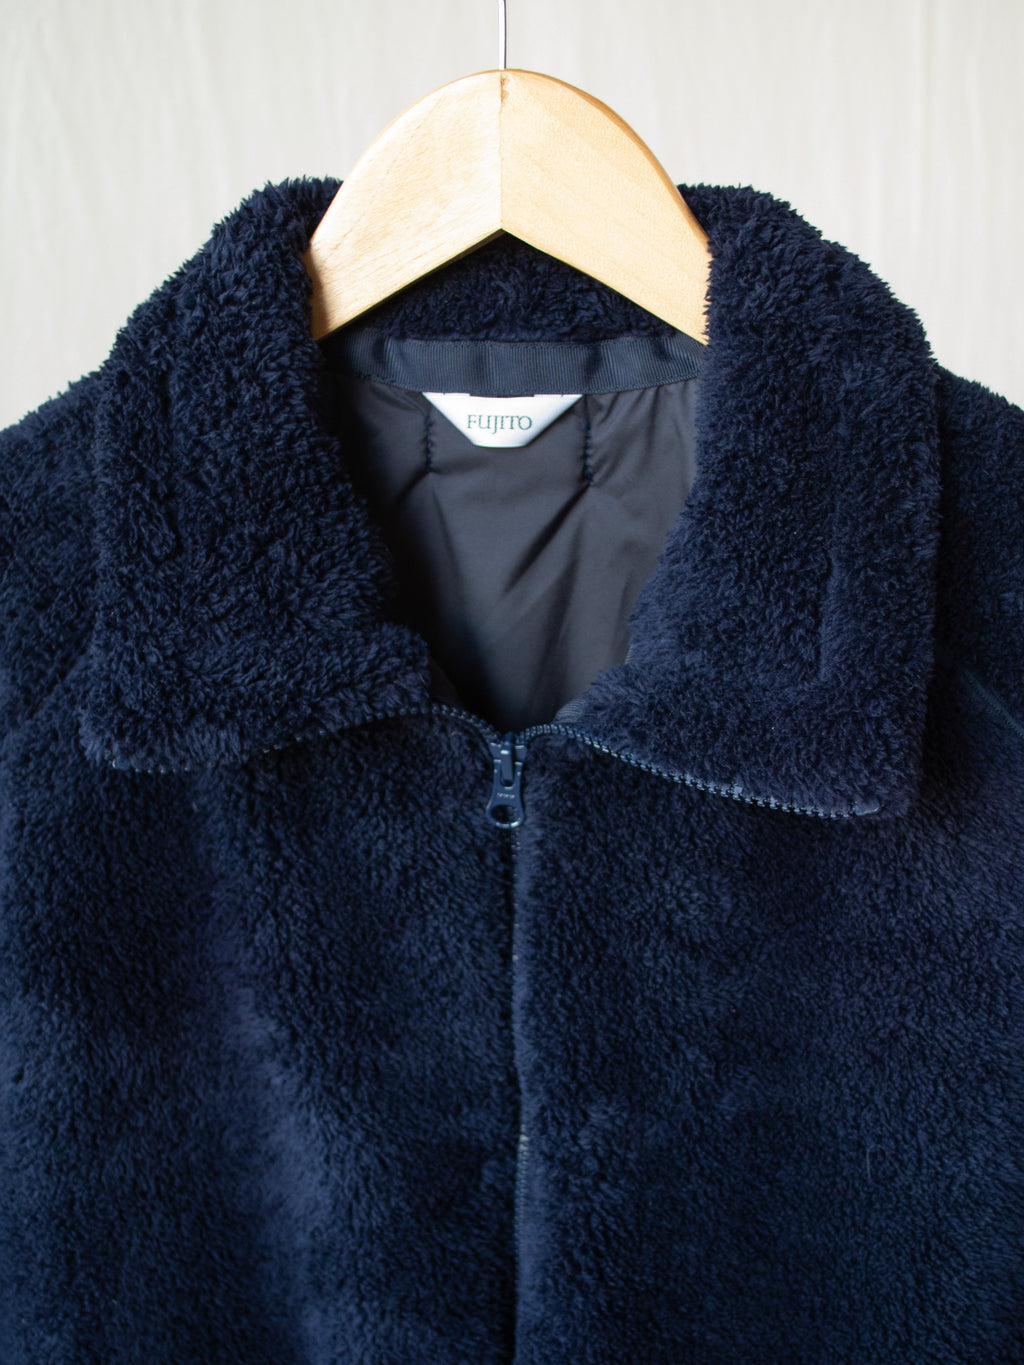 Namu Shop - Fujito Fleece Blouson - Navy